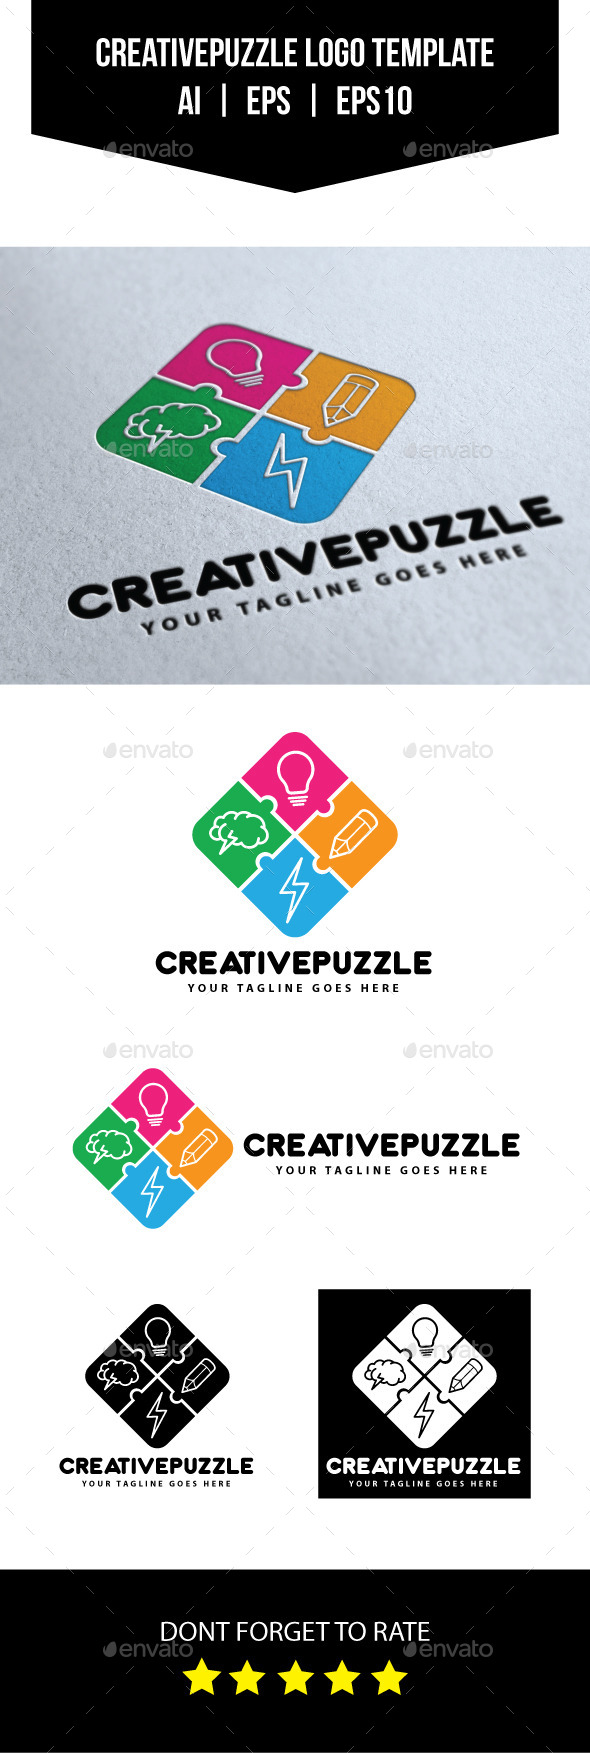 Creative Puzzle Logo Template - Objects Logo Templates